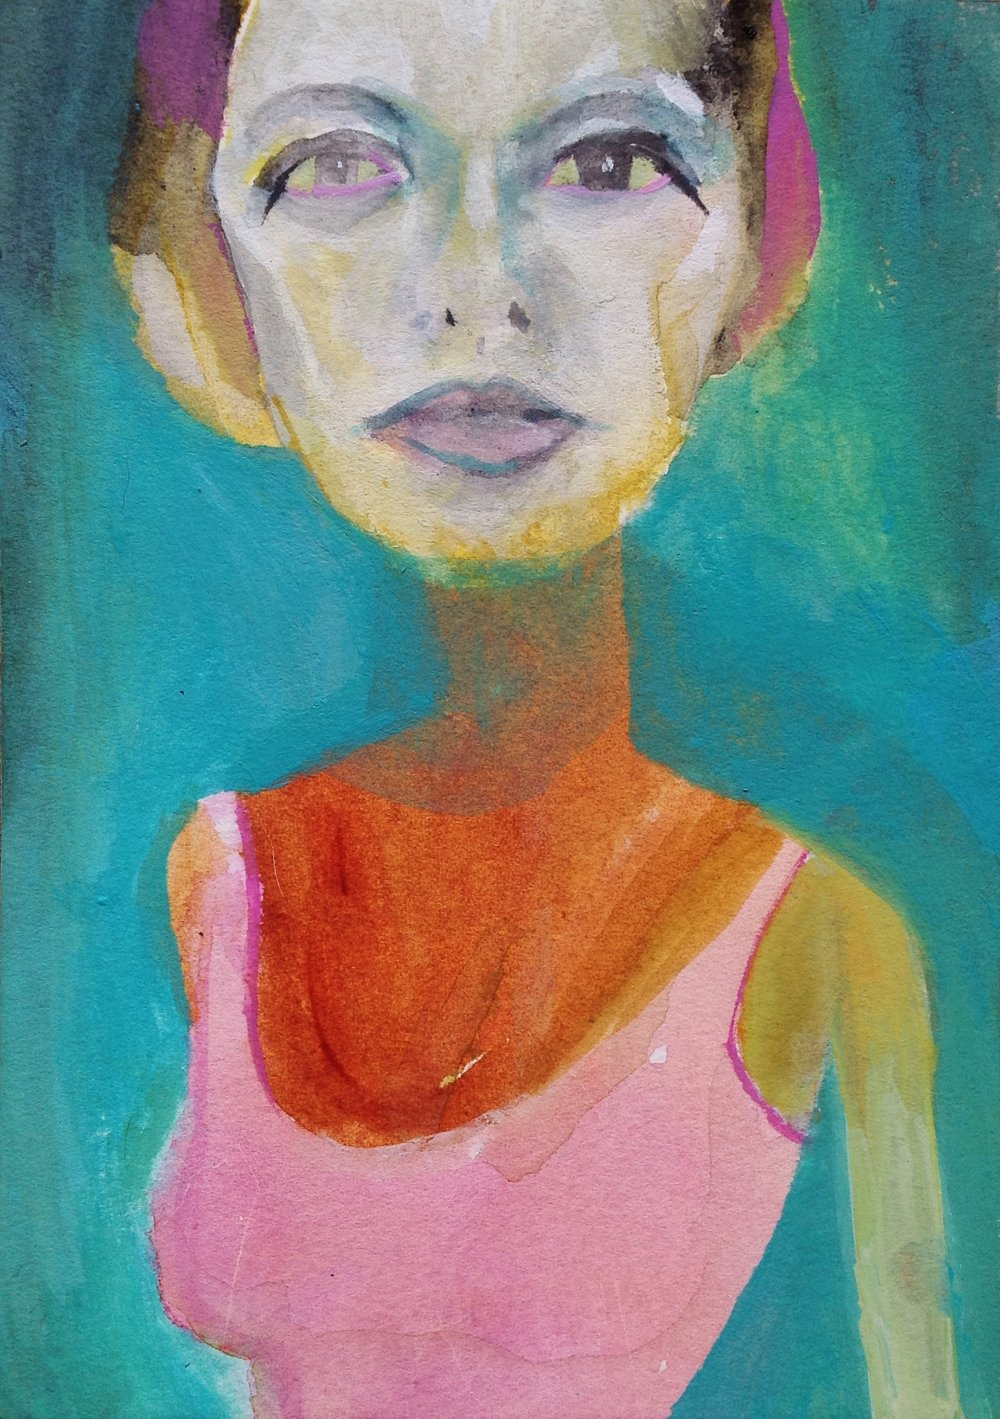 "Girl, You Got Some Skinny Arms   acrylic and watercolor on watercolor board  5""x7""  2018"